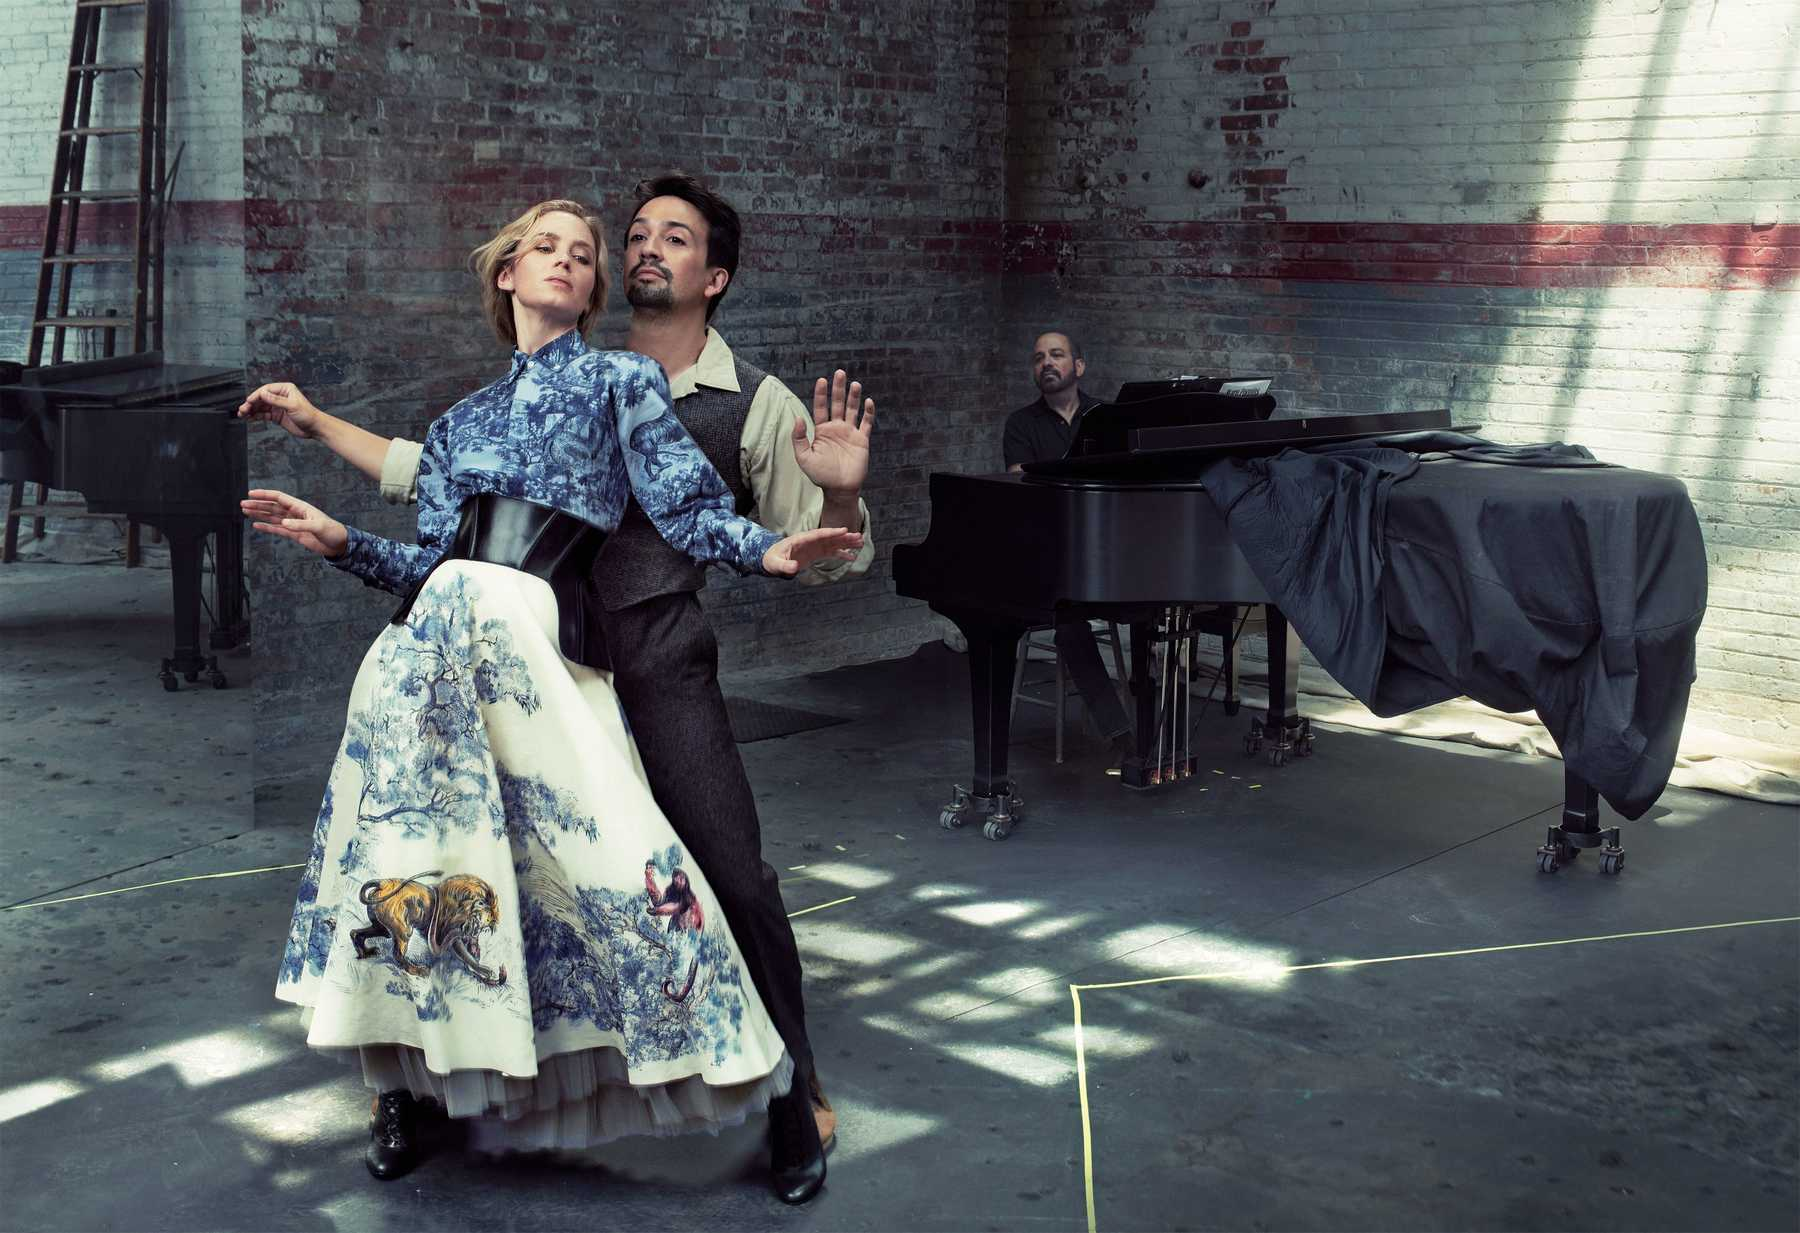 Emily-Blunt-Lin-Manuel-Miranda-photographed-by-Annie-Leibovitz-for-Vogue-December-201887851574_emily-03.jpg